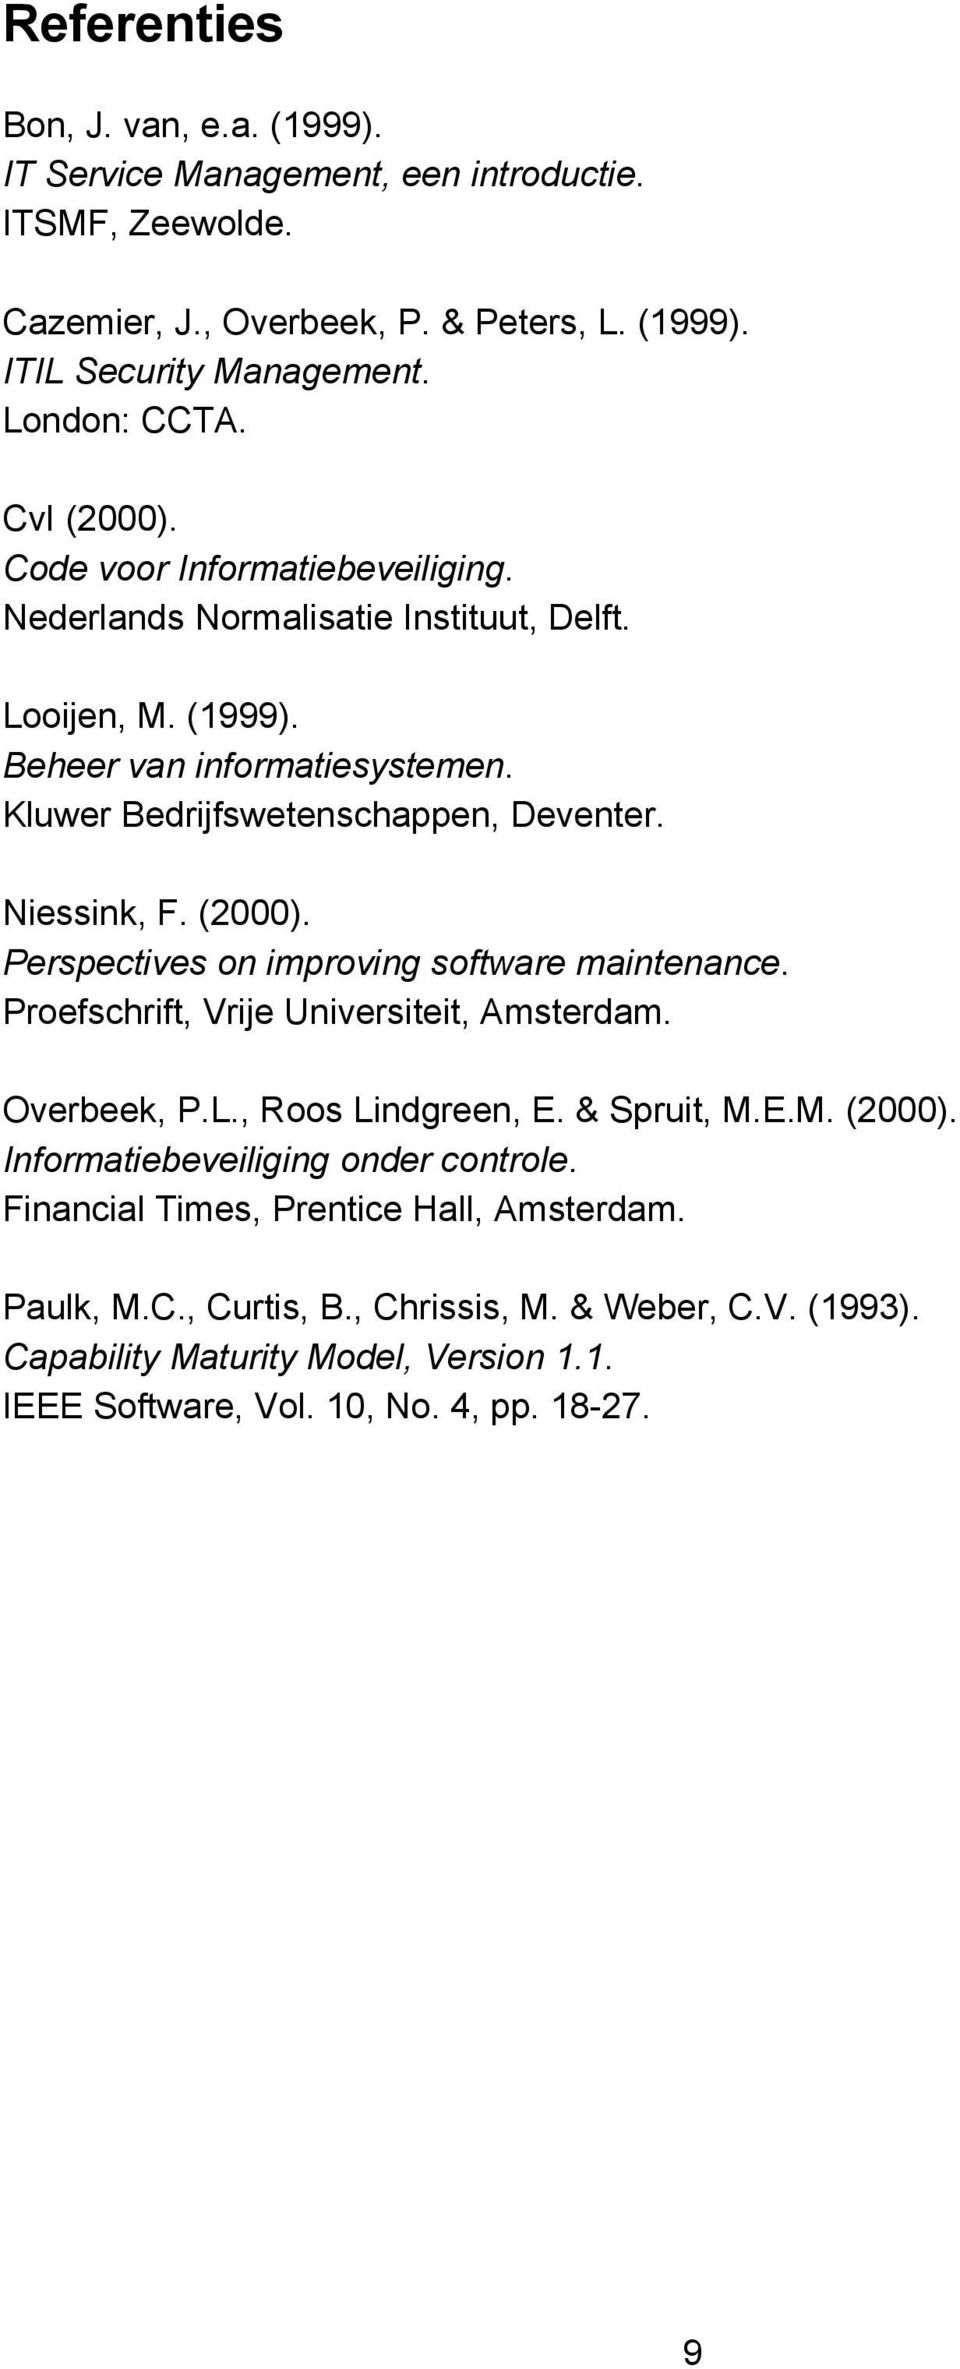 (2000). Perspectives on improving software maintenance. Proefschrift, Vrije Universiteit, Amsterdam. Overbeek, P.L., Roos Lindgreen, E. & Spruit, M.E.M. (2000).